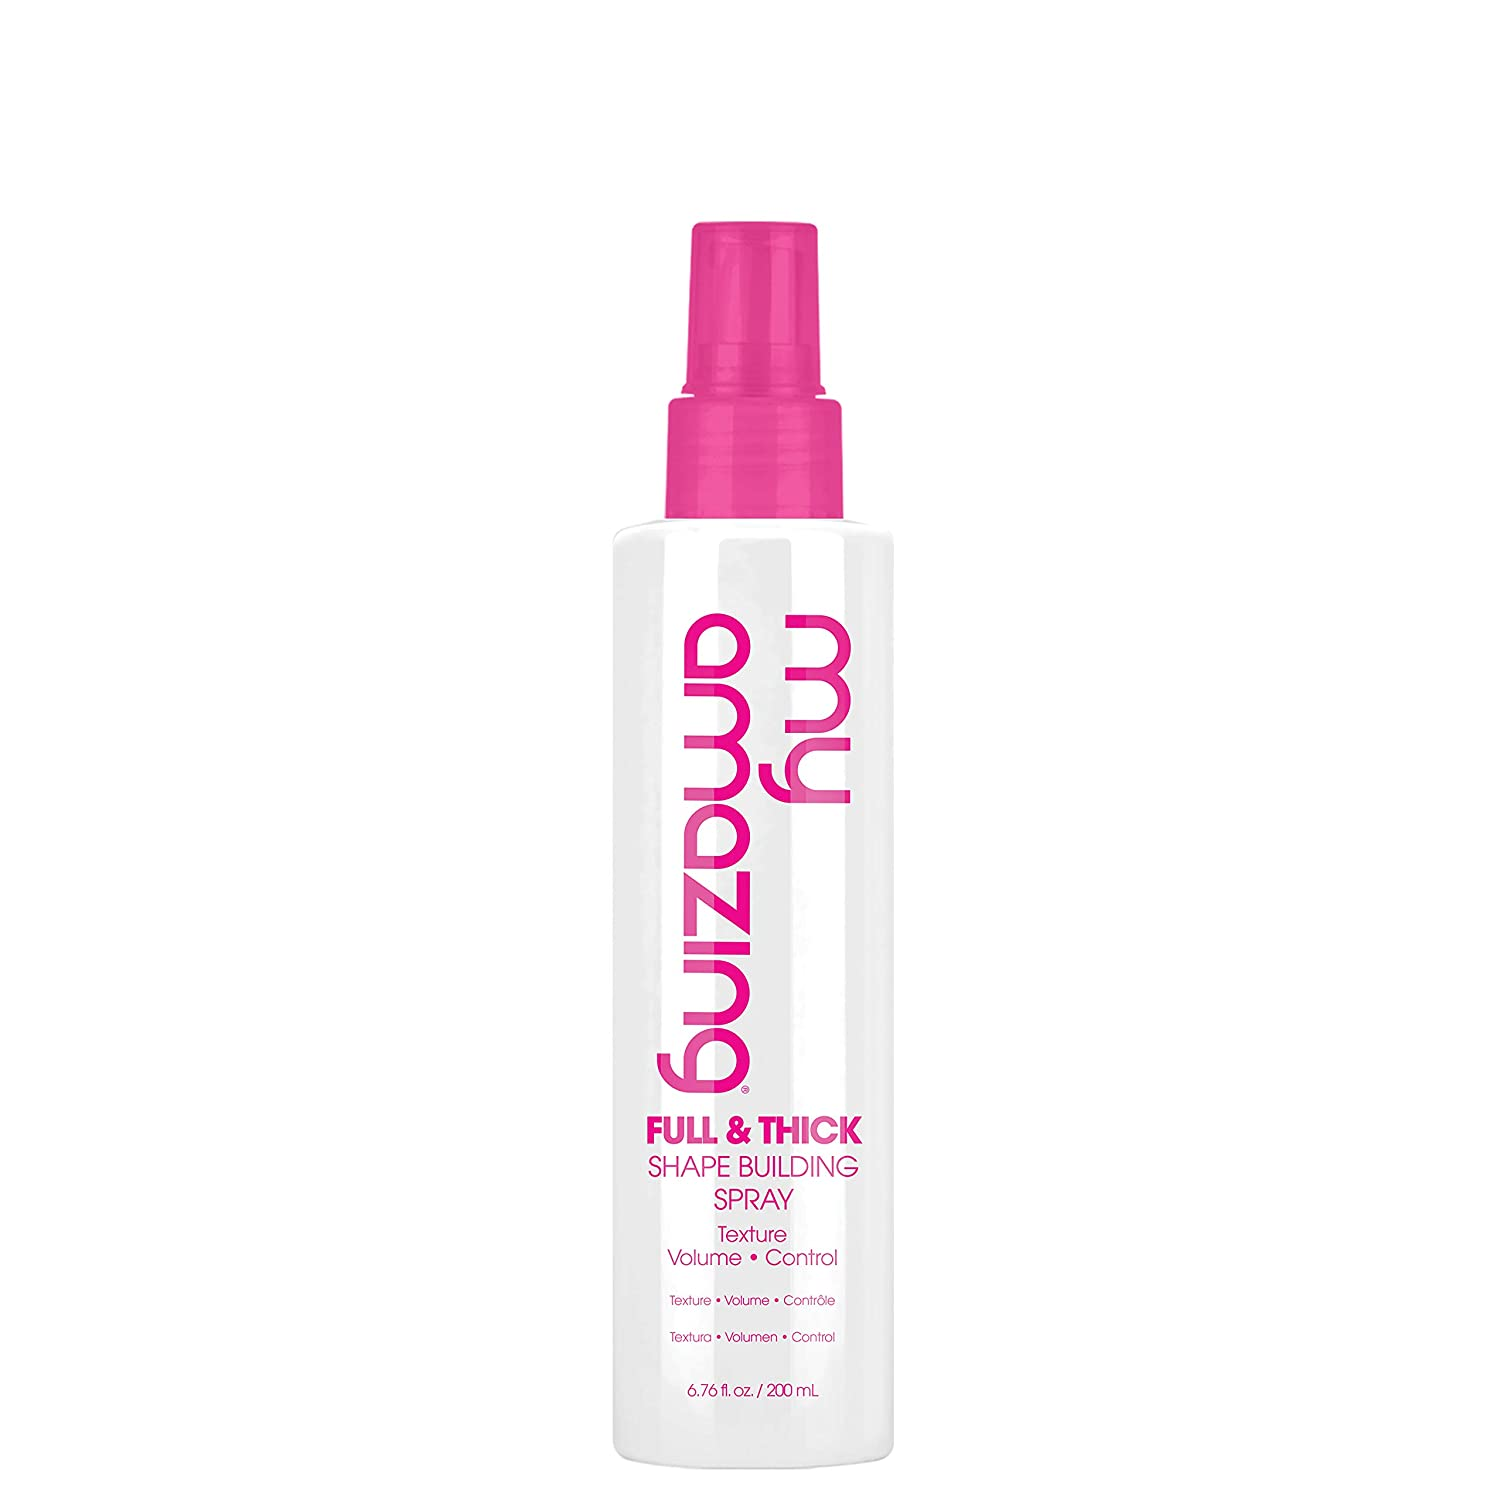 My Amazing Full & Thick Shape Building Spray, 6.76 oz. - Styling Spray for Women and Men, Volumizing and Thickening Texture Mist - Finishing Styling Mister for All Hair Types, Nourishing and Detangler